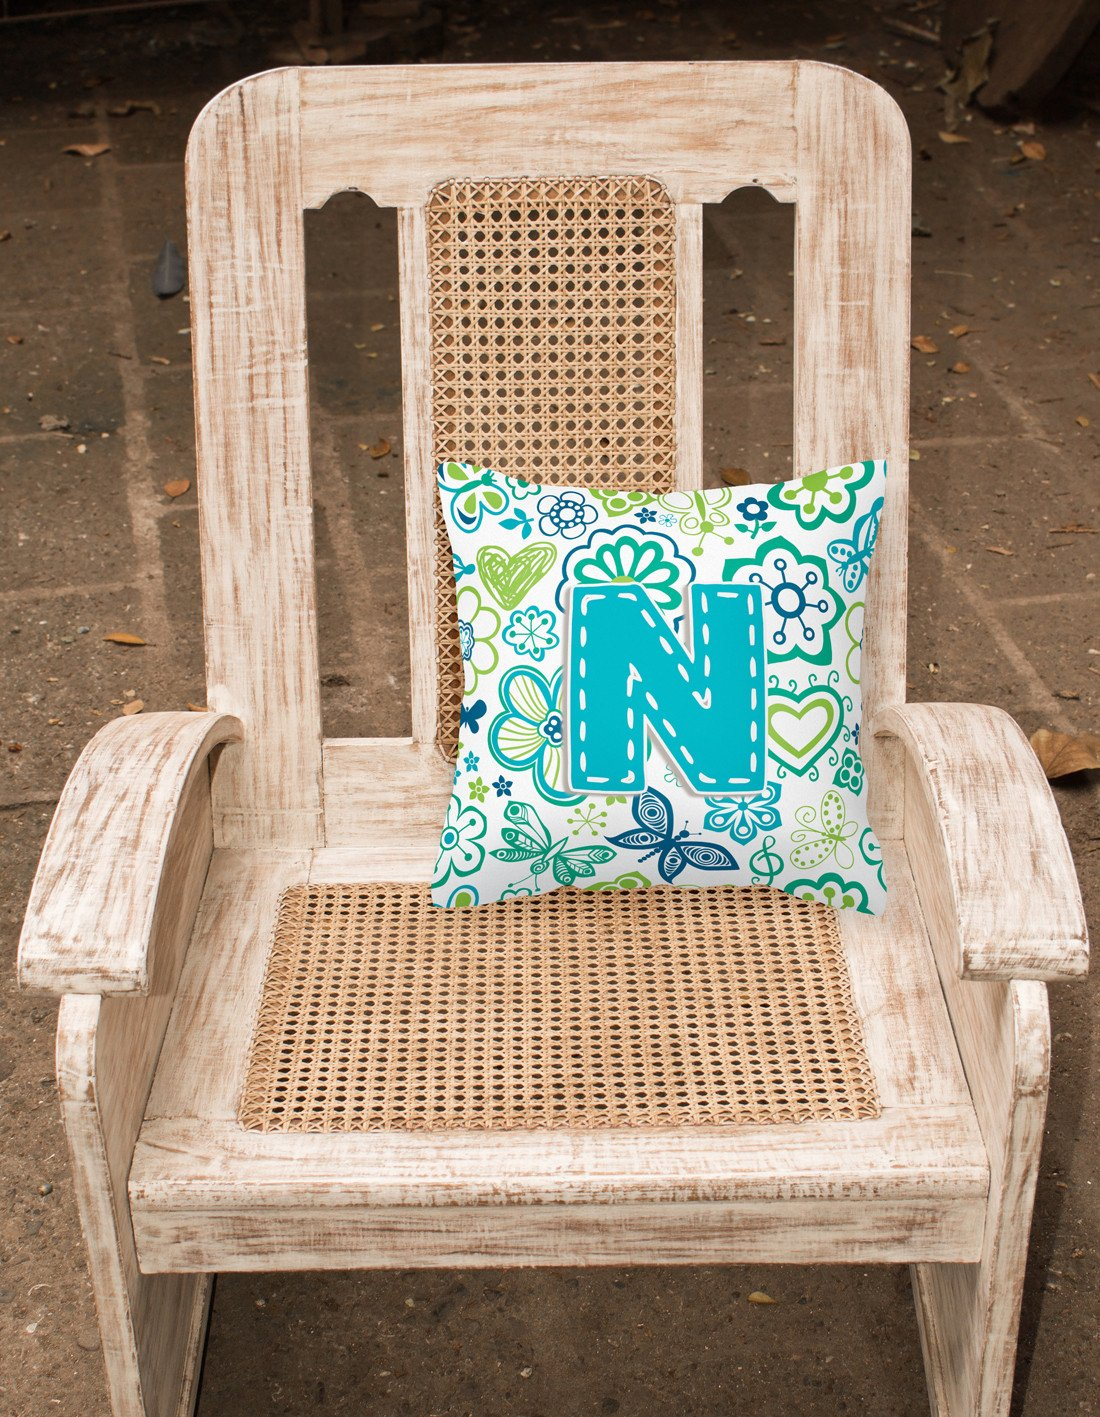 Letter N Flowers and Butterflies Teal Blue Canvas Fabric Decorative Pillow CJ2006-NPW1414 by Caroline's Treasures